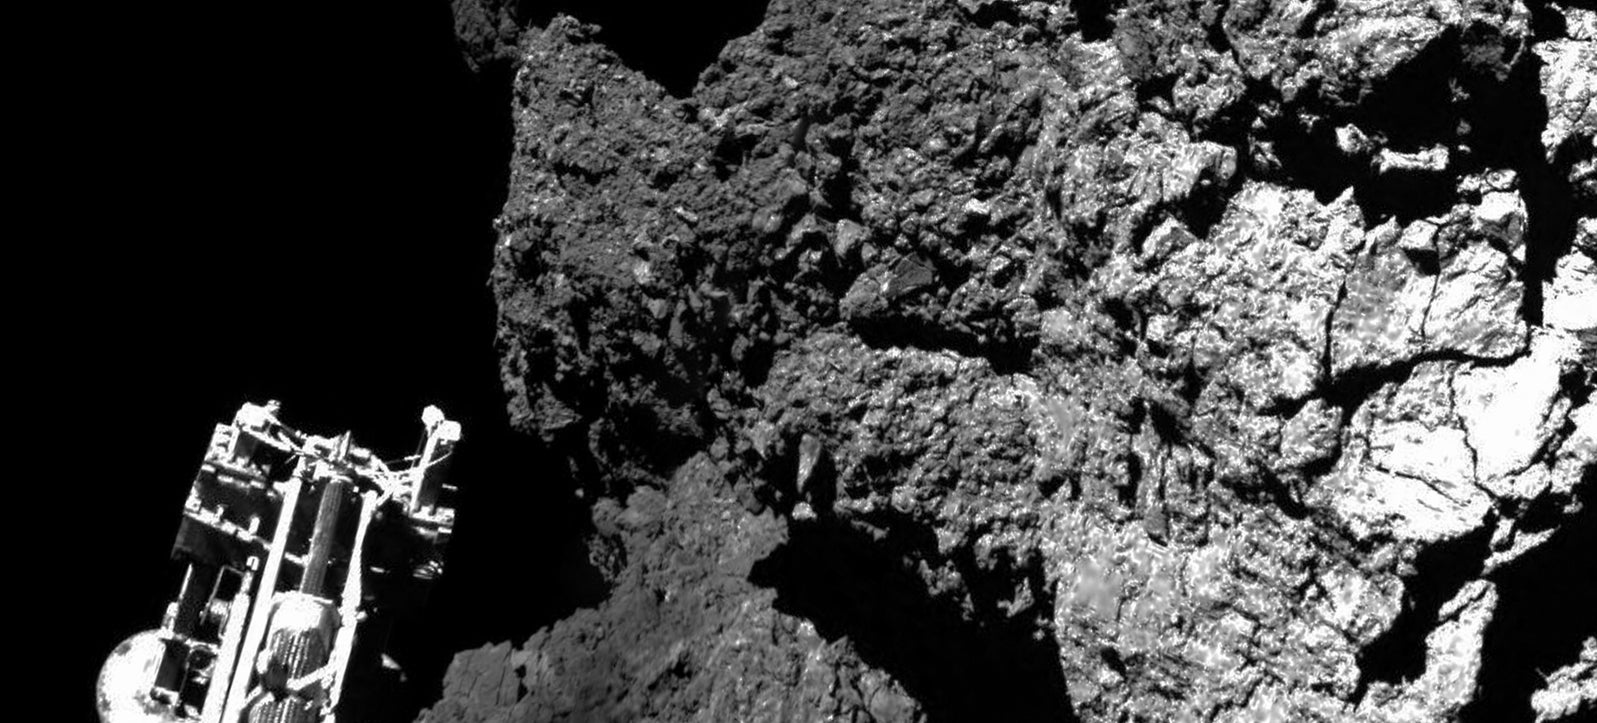 First comet drilling ever confirmed: 100% successful mission, says ESA